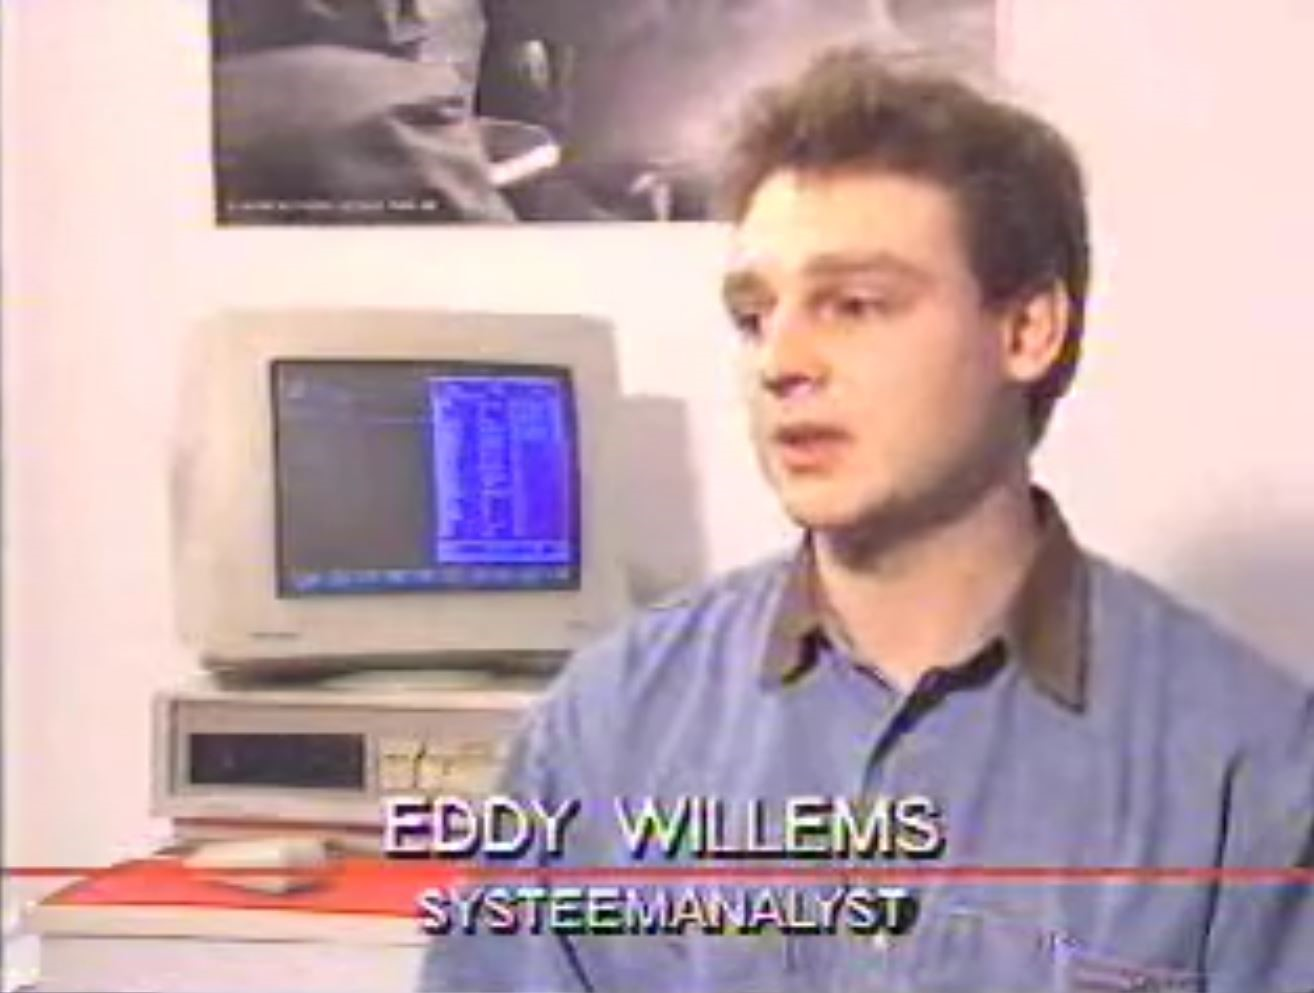 First interview in 1989 by VTM Nieuws. (Source: private)